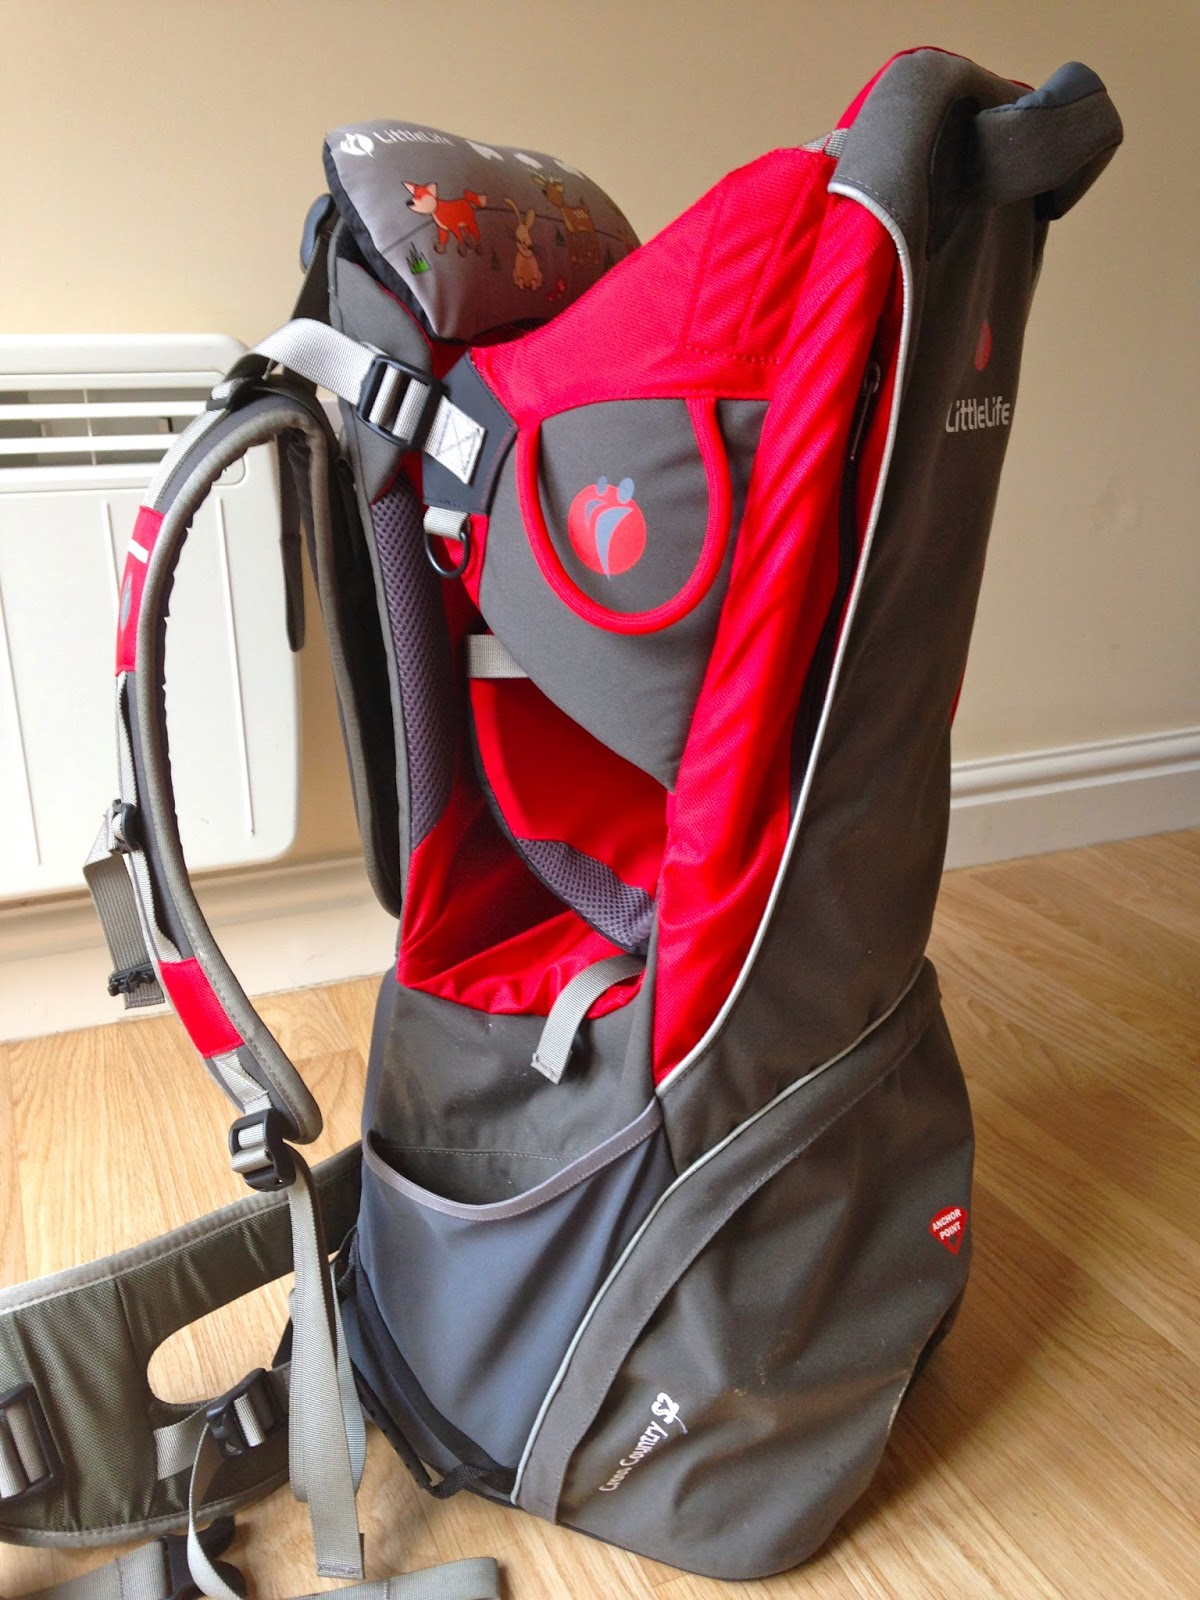 65a4b2ffb5a We brought the Little Life Carrier for my partner's birthday, we thought it  would be really handy as we like nothing more than going for brisk walks  with ...